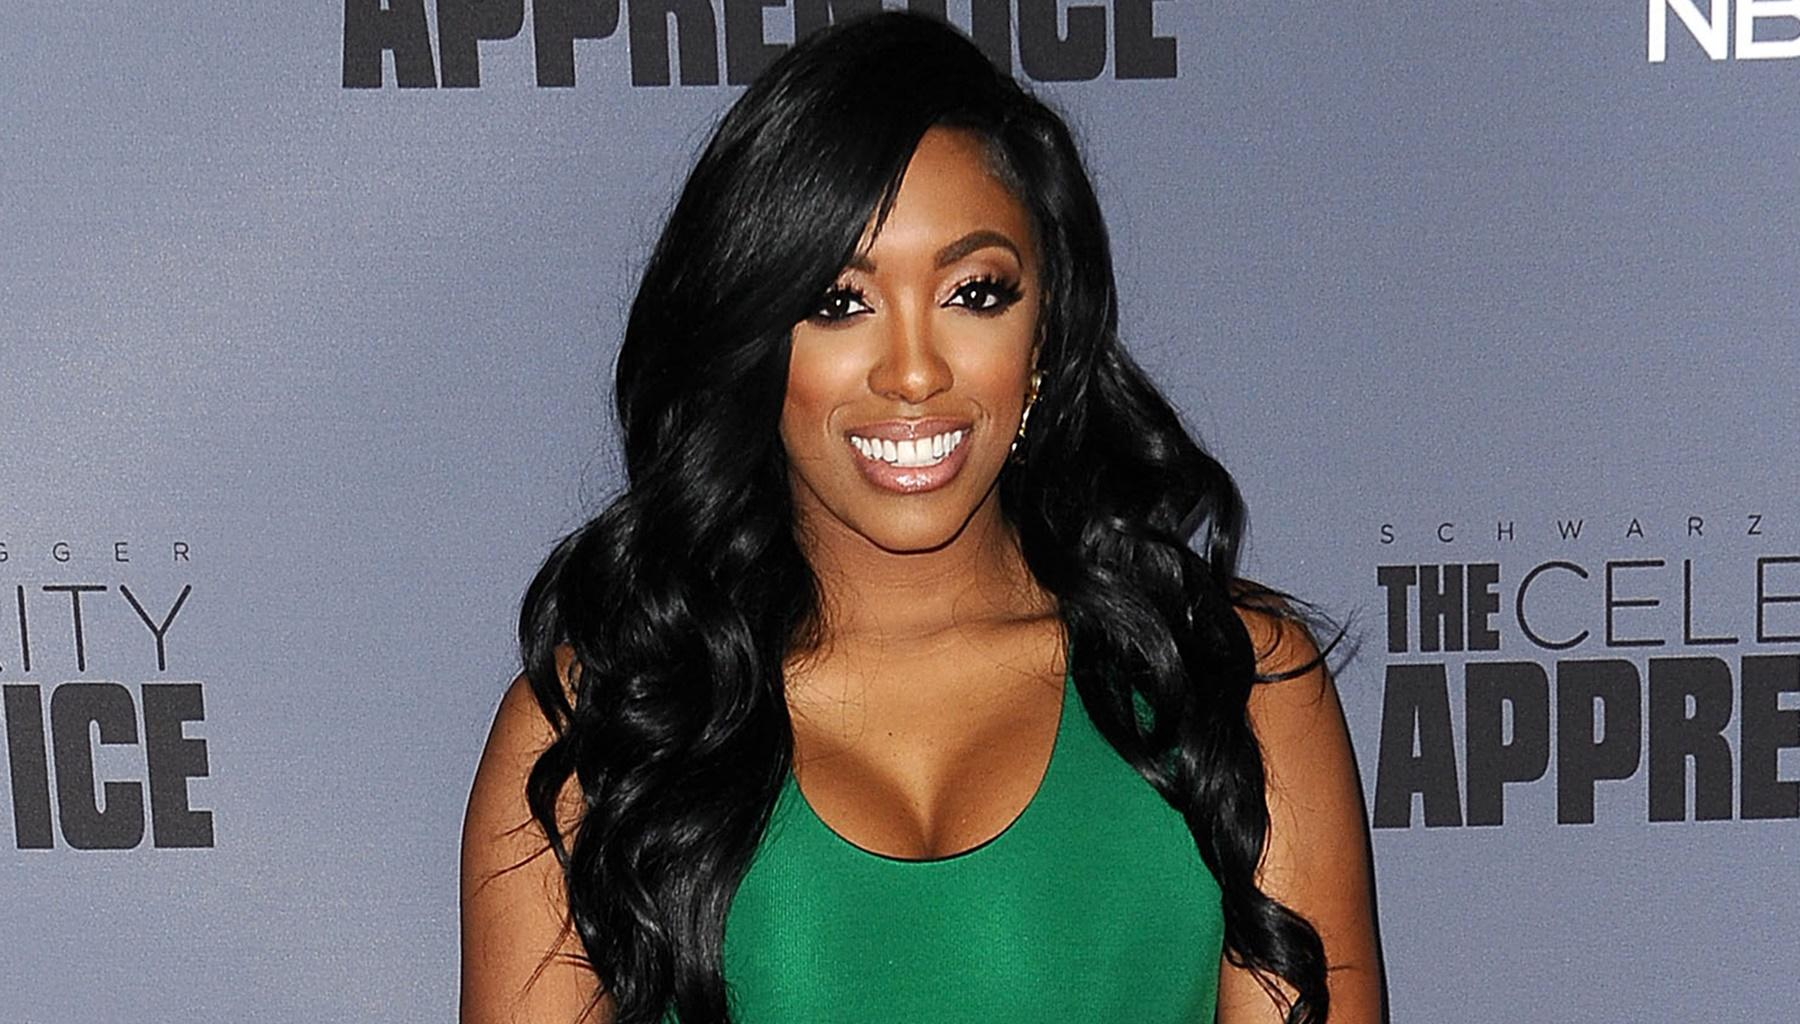 Kim Kardashian's BFF Defends Porsha Williams With Empowering Message After She Posts Picture Without Makeup -- His Words Will Inspire You